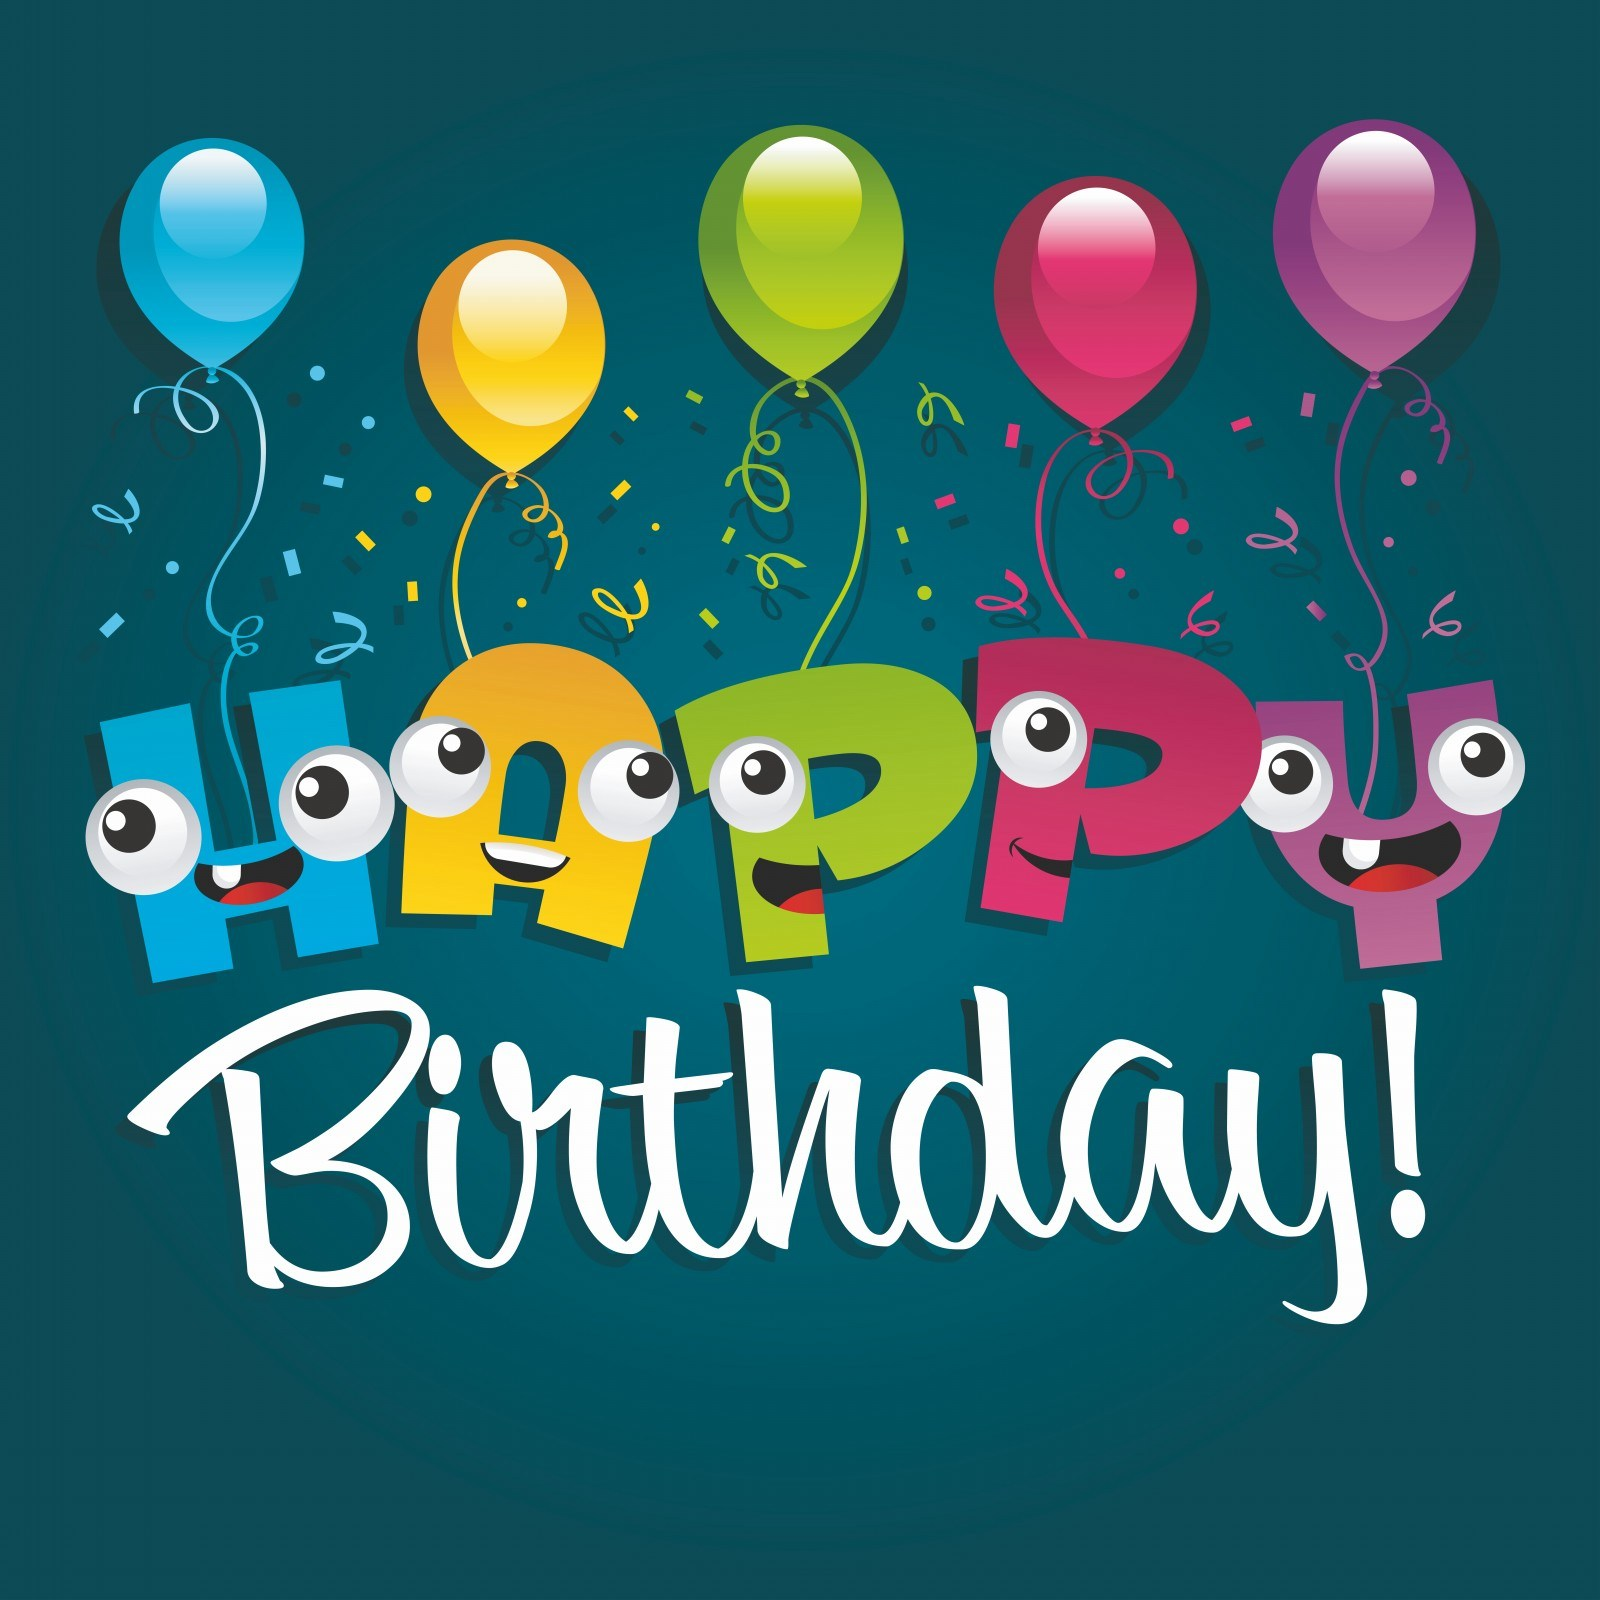 happy birthday card design with photo ; birthday-invitations-card-the-best-latest-happy-birthday-greeting-cards-funny-amp-cute-card-design-cartoon-characters-awesome-funny-bday-wishes